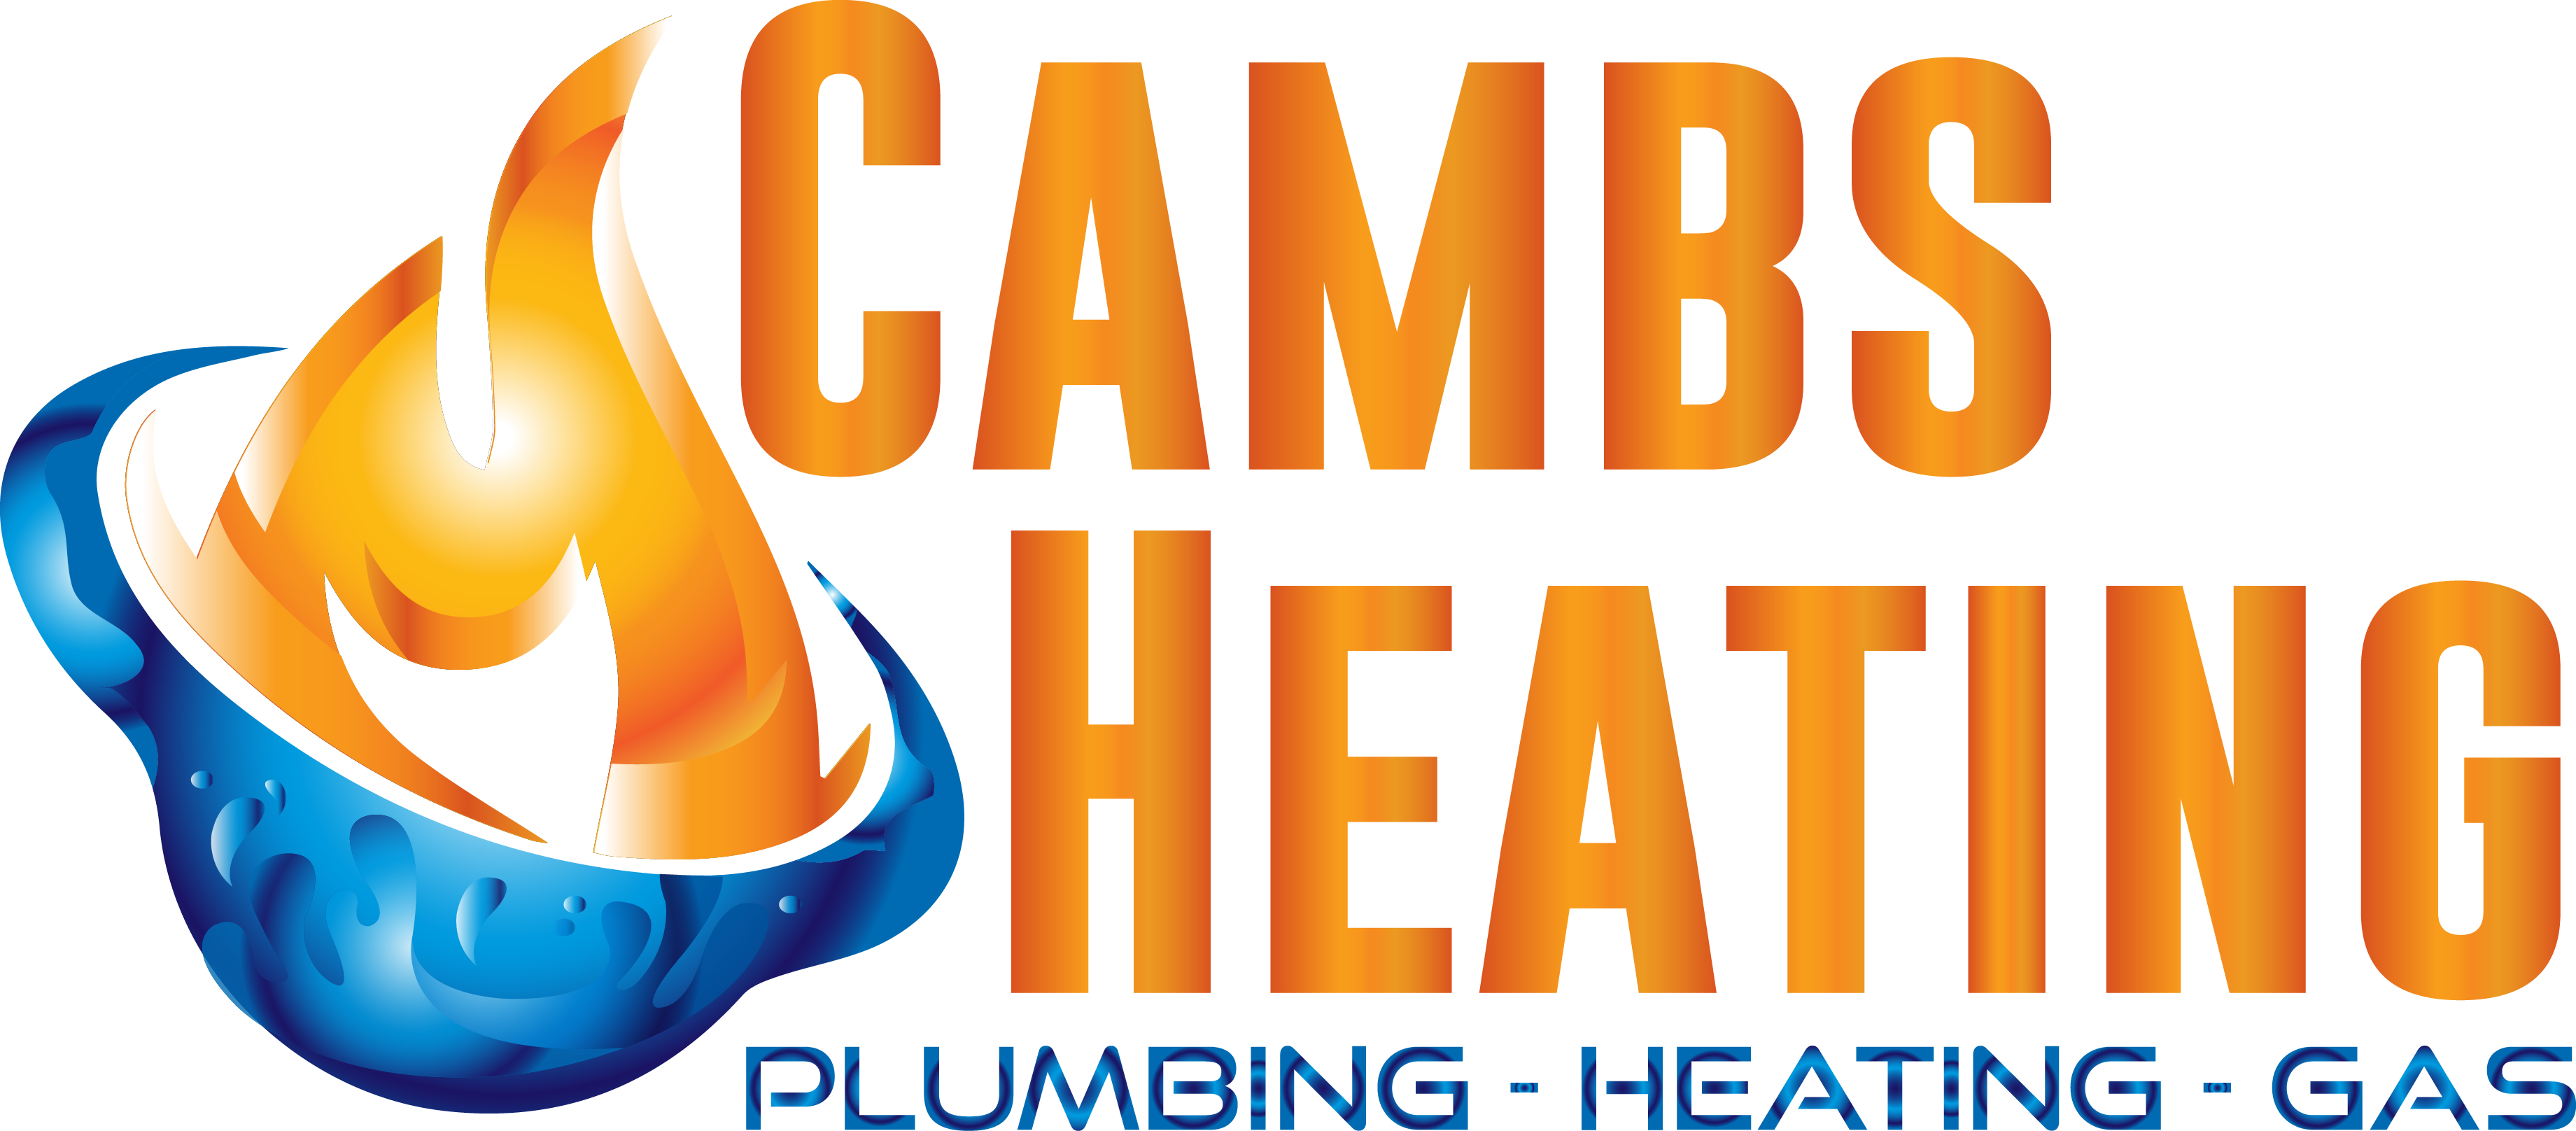 Cambs Heating | Boiler & Plumbing Specialists